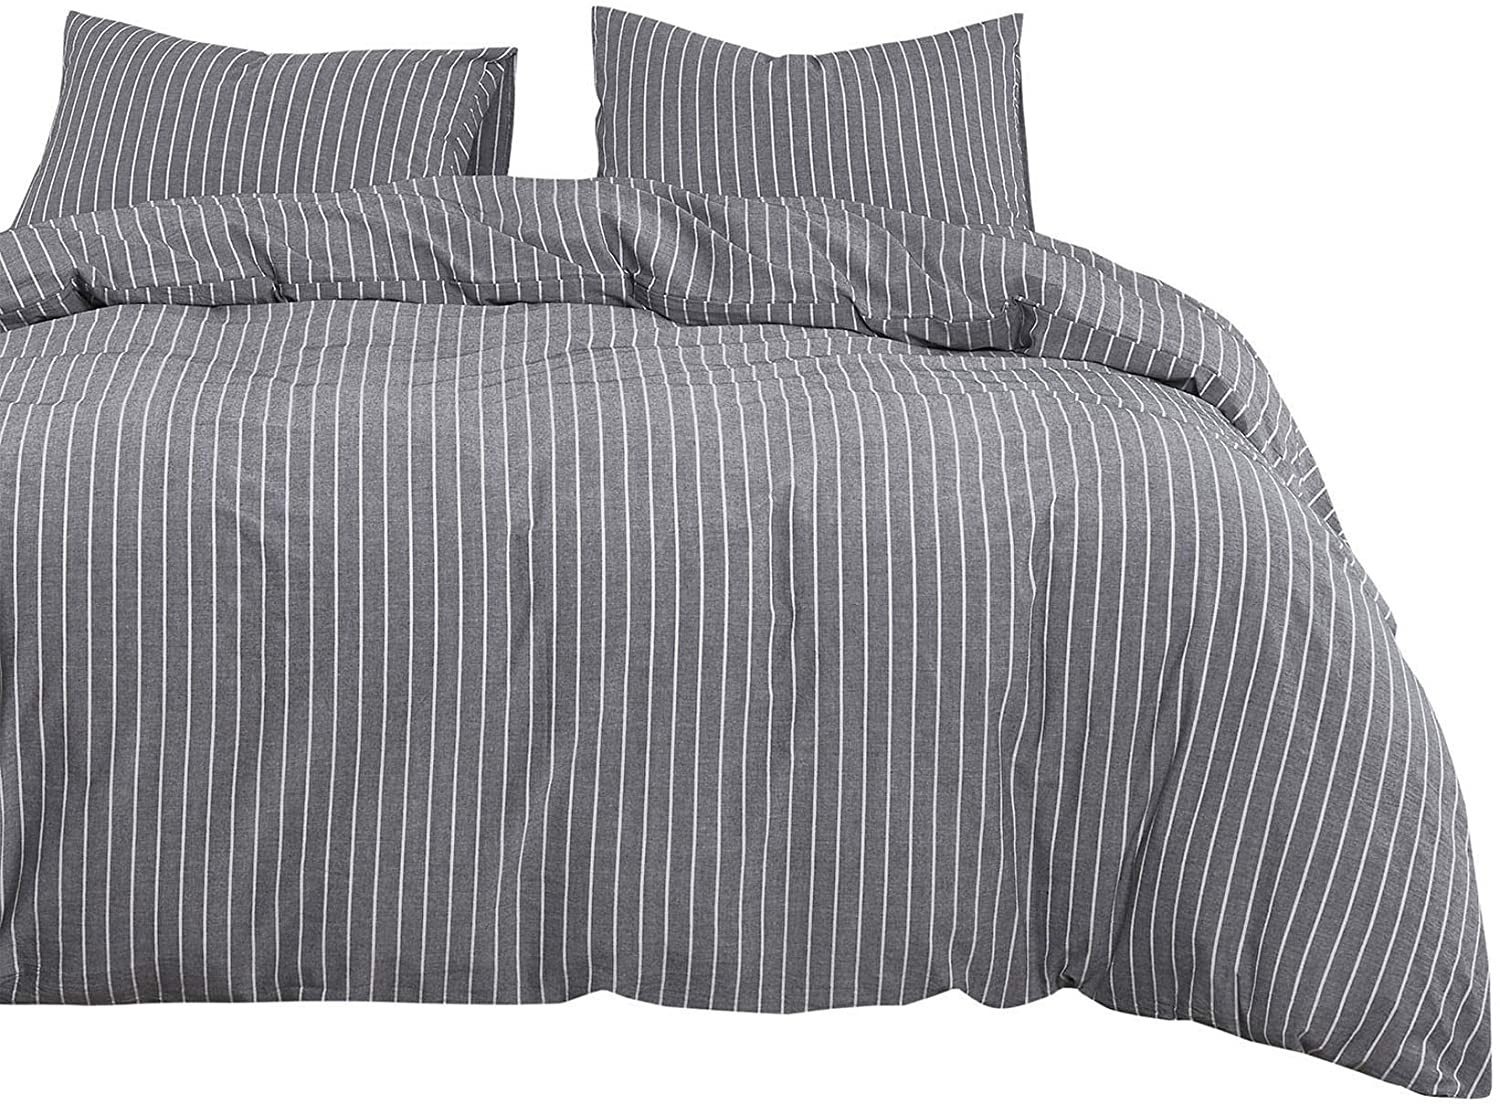 Wake In Cloud - Gray Max 61% OFF Striped Cover Cotton Max 72% OFF 100% Set Washed Duvet